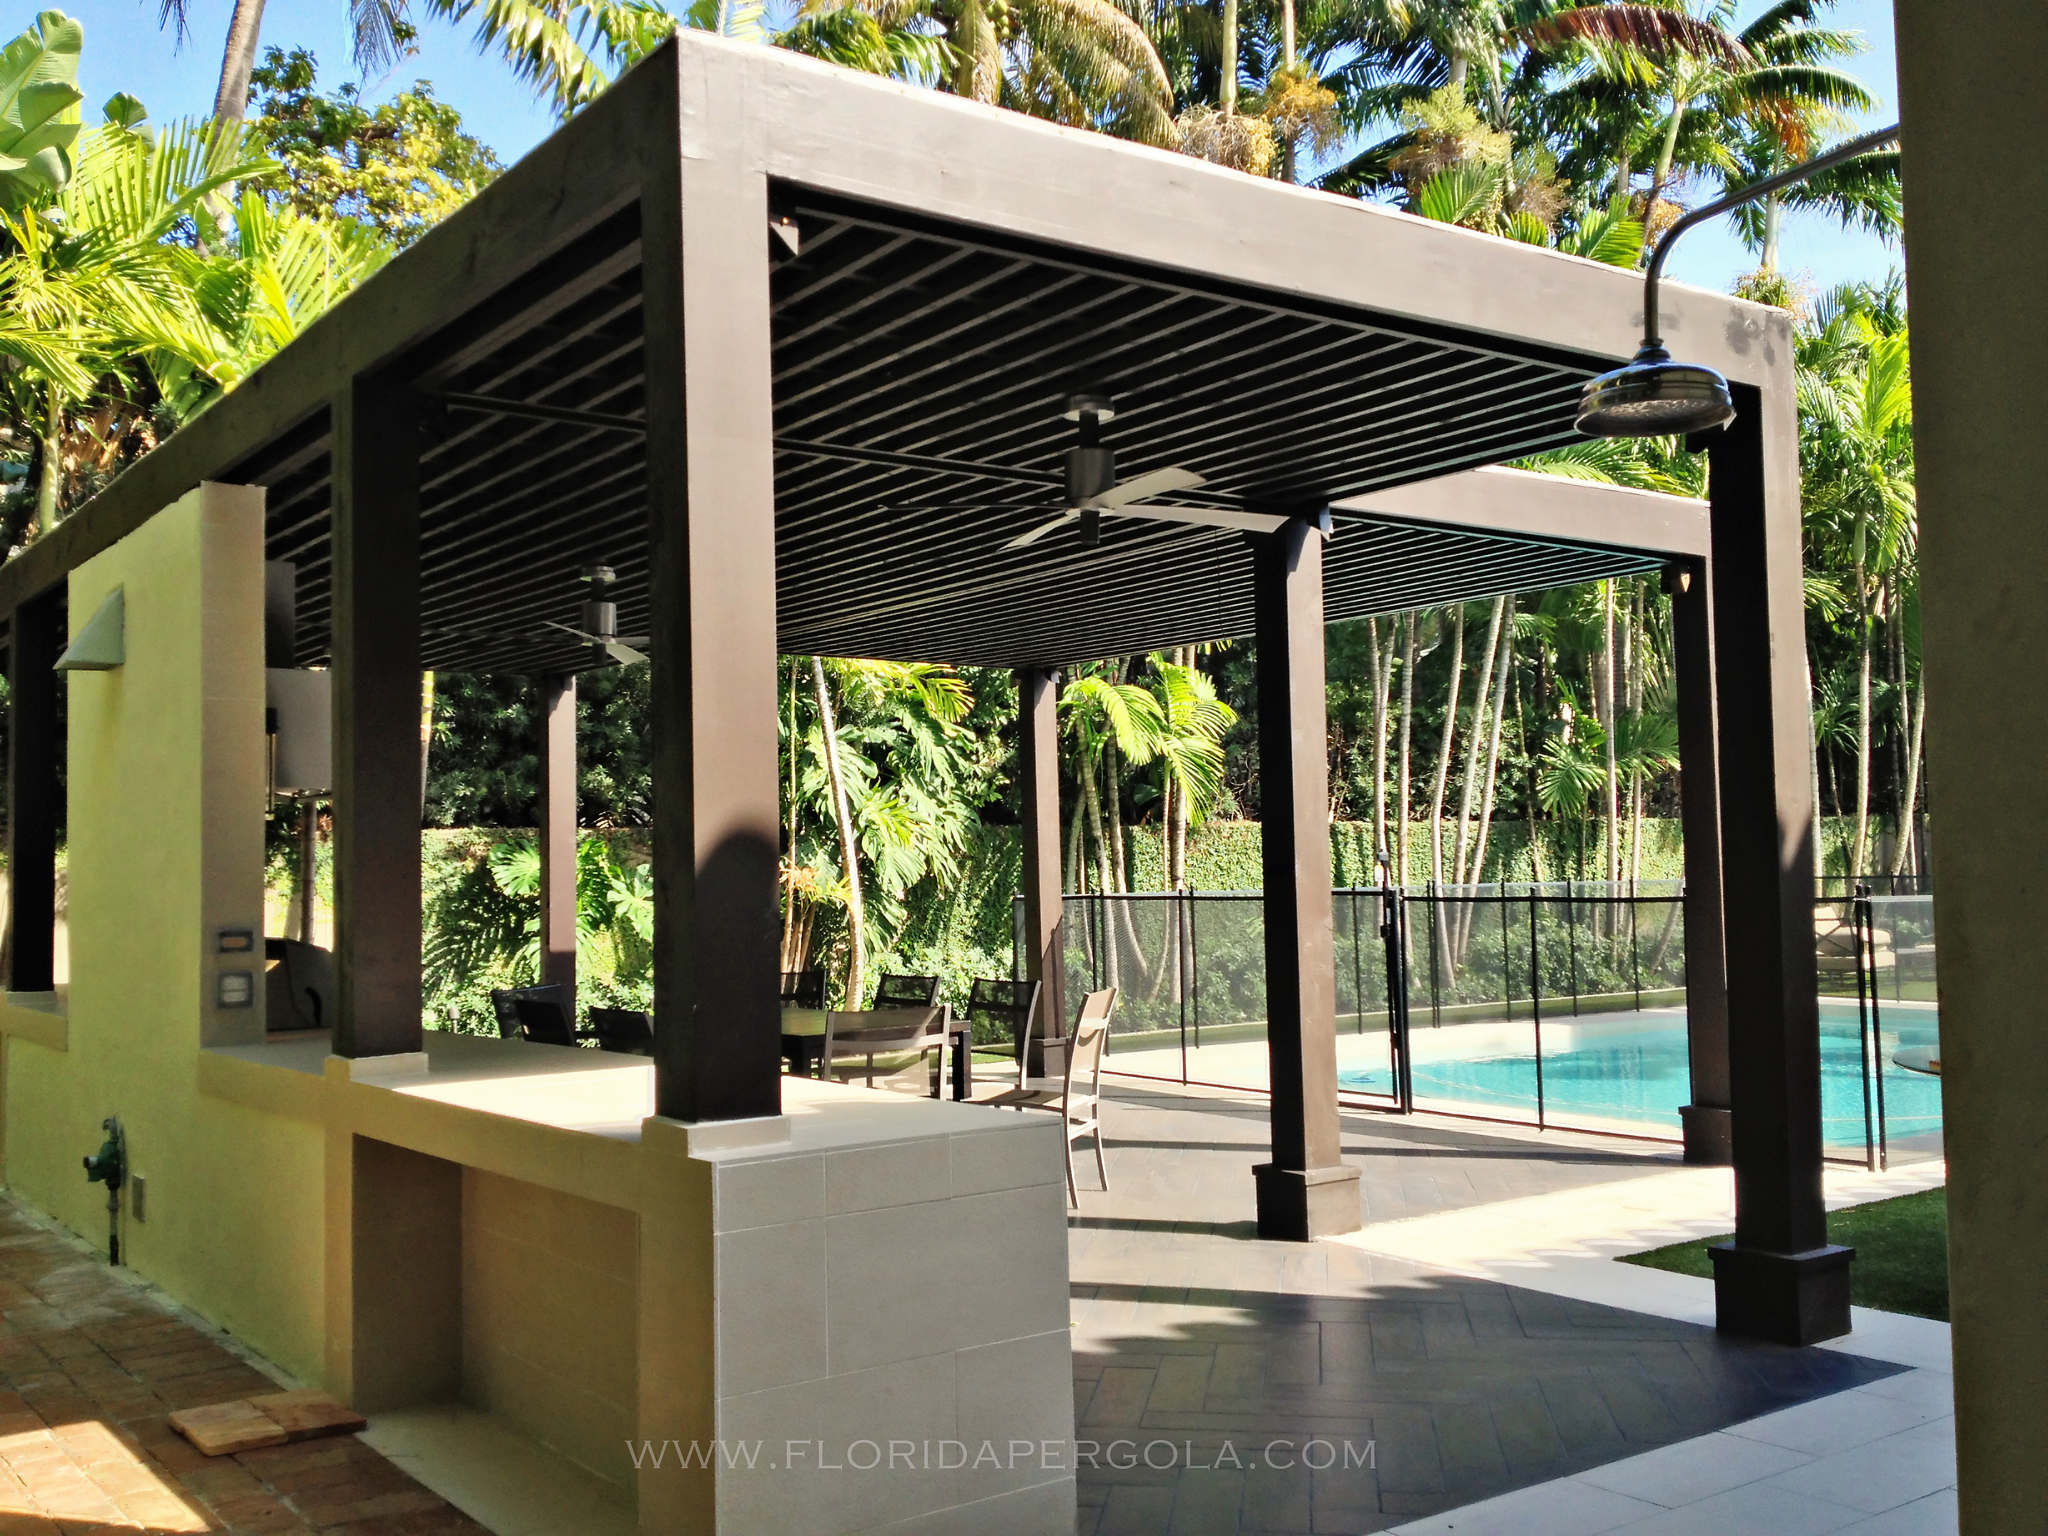 contemporary pergola florida pergola. Black Bedroom Furniture Sets. Home Design Ideas